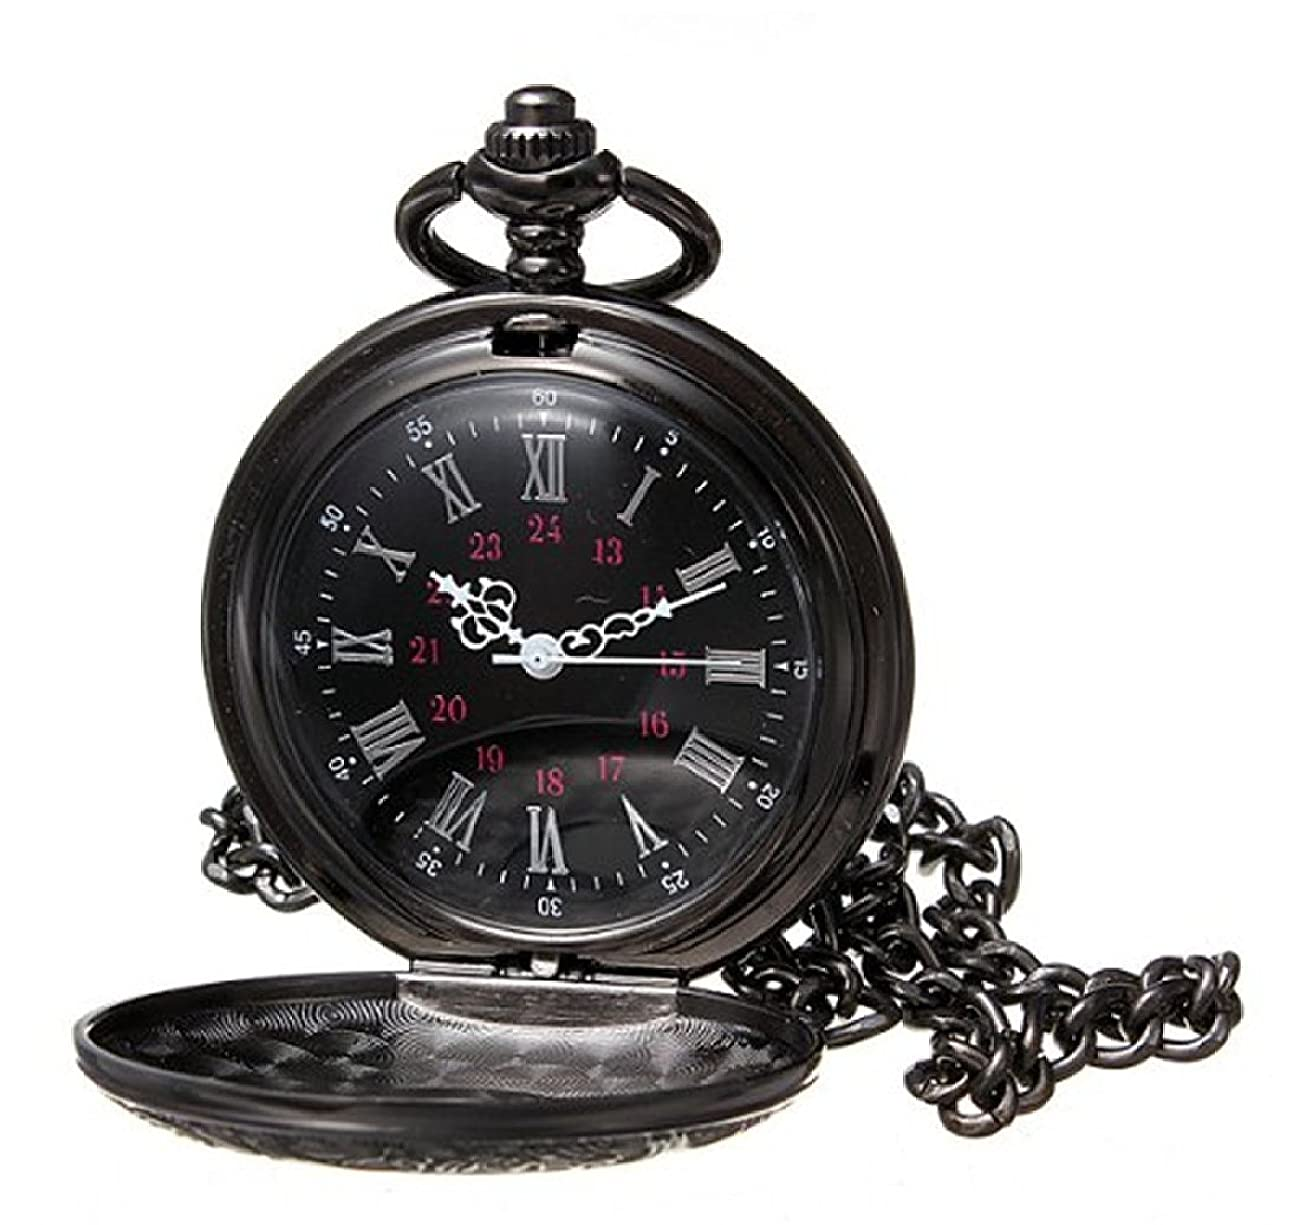 HJIAN Pocket Watch Black Roman Retro Vintage Quartz Pocket Watch Roman Numerals Steampunk Fob Watch 0